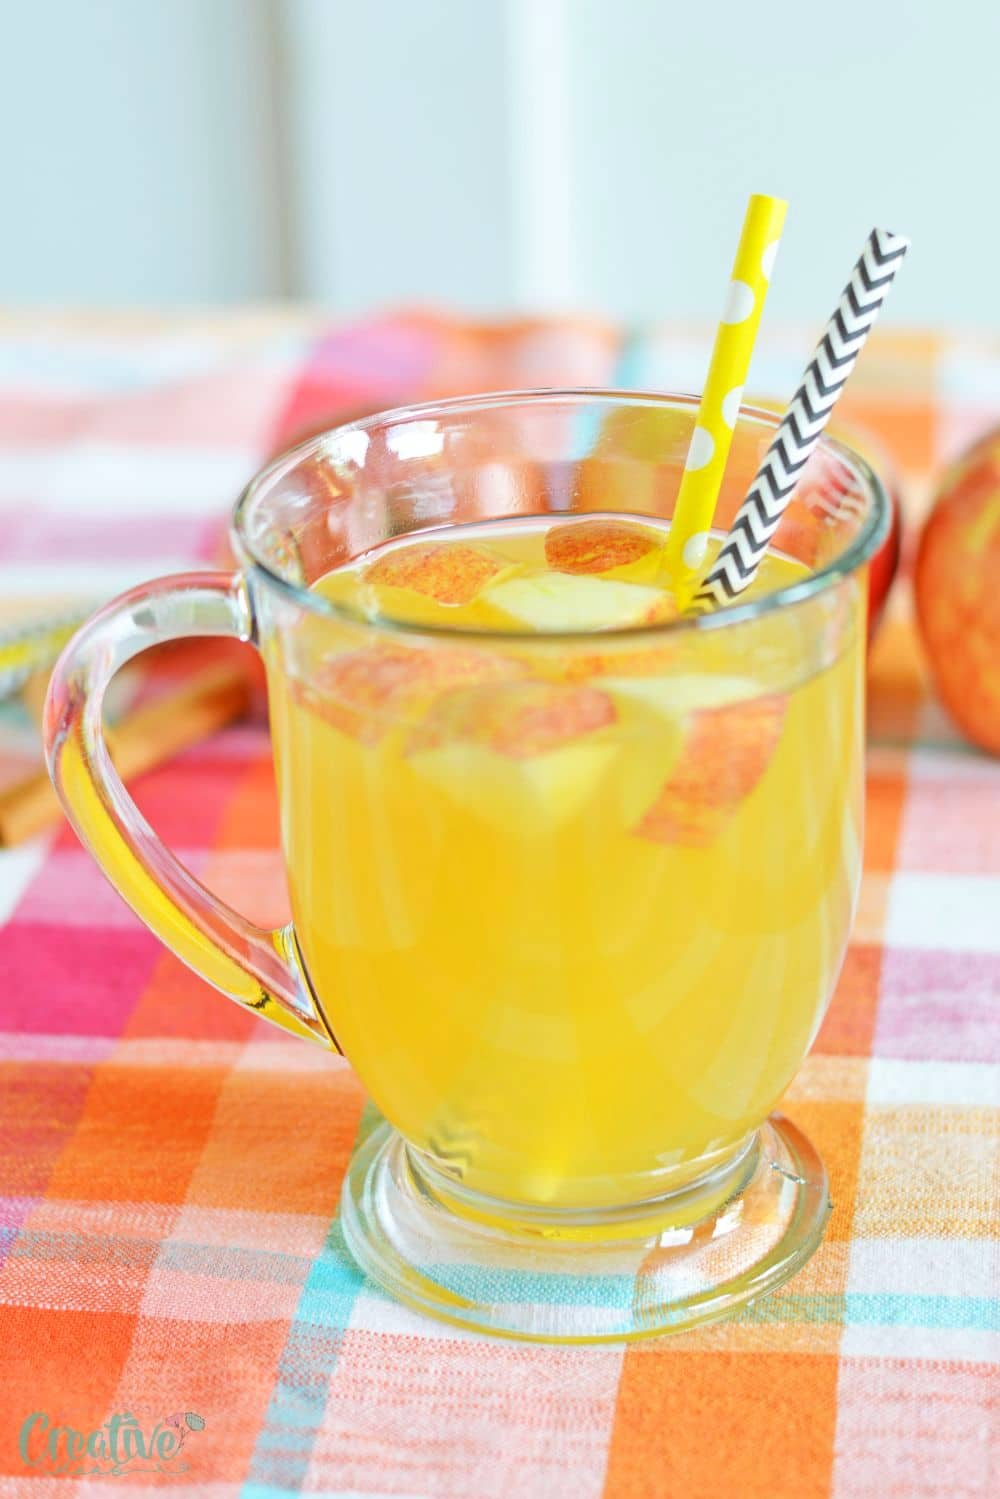 Close up image of spiked caramel apple cider in a drinking mug, decorated with apples and paper straws